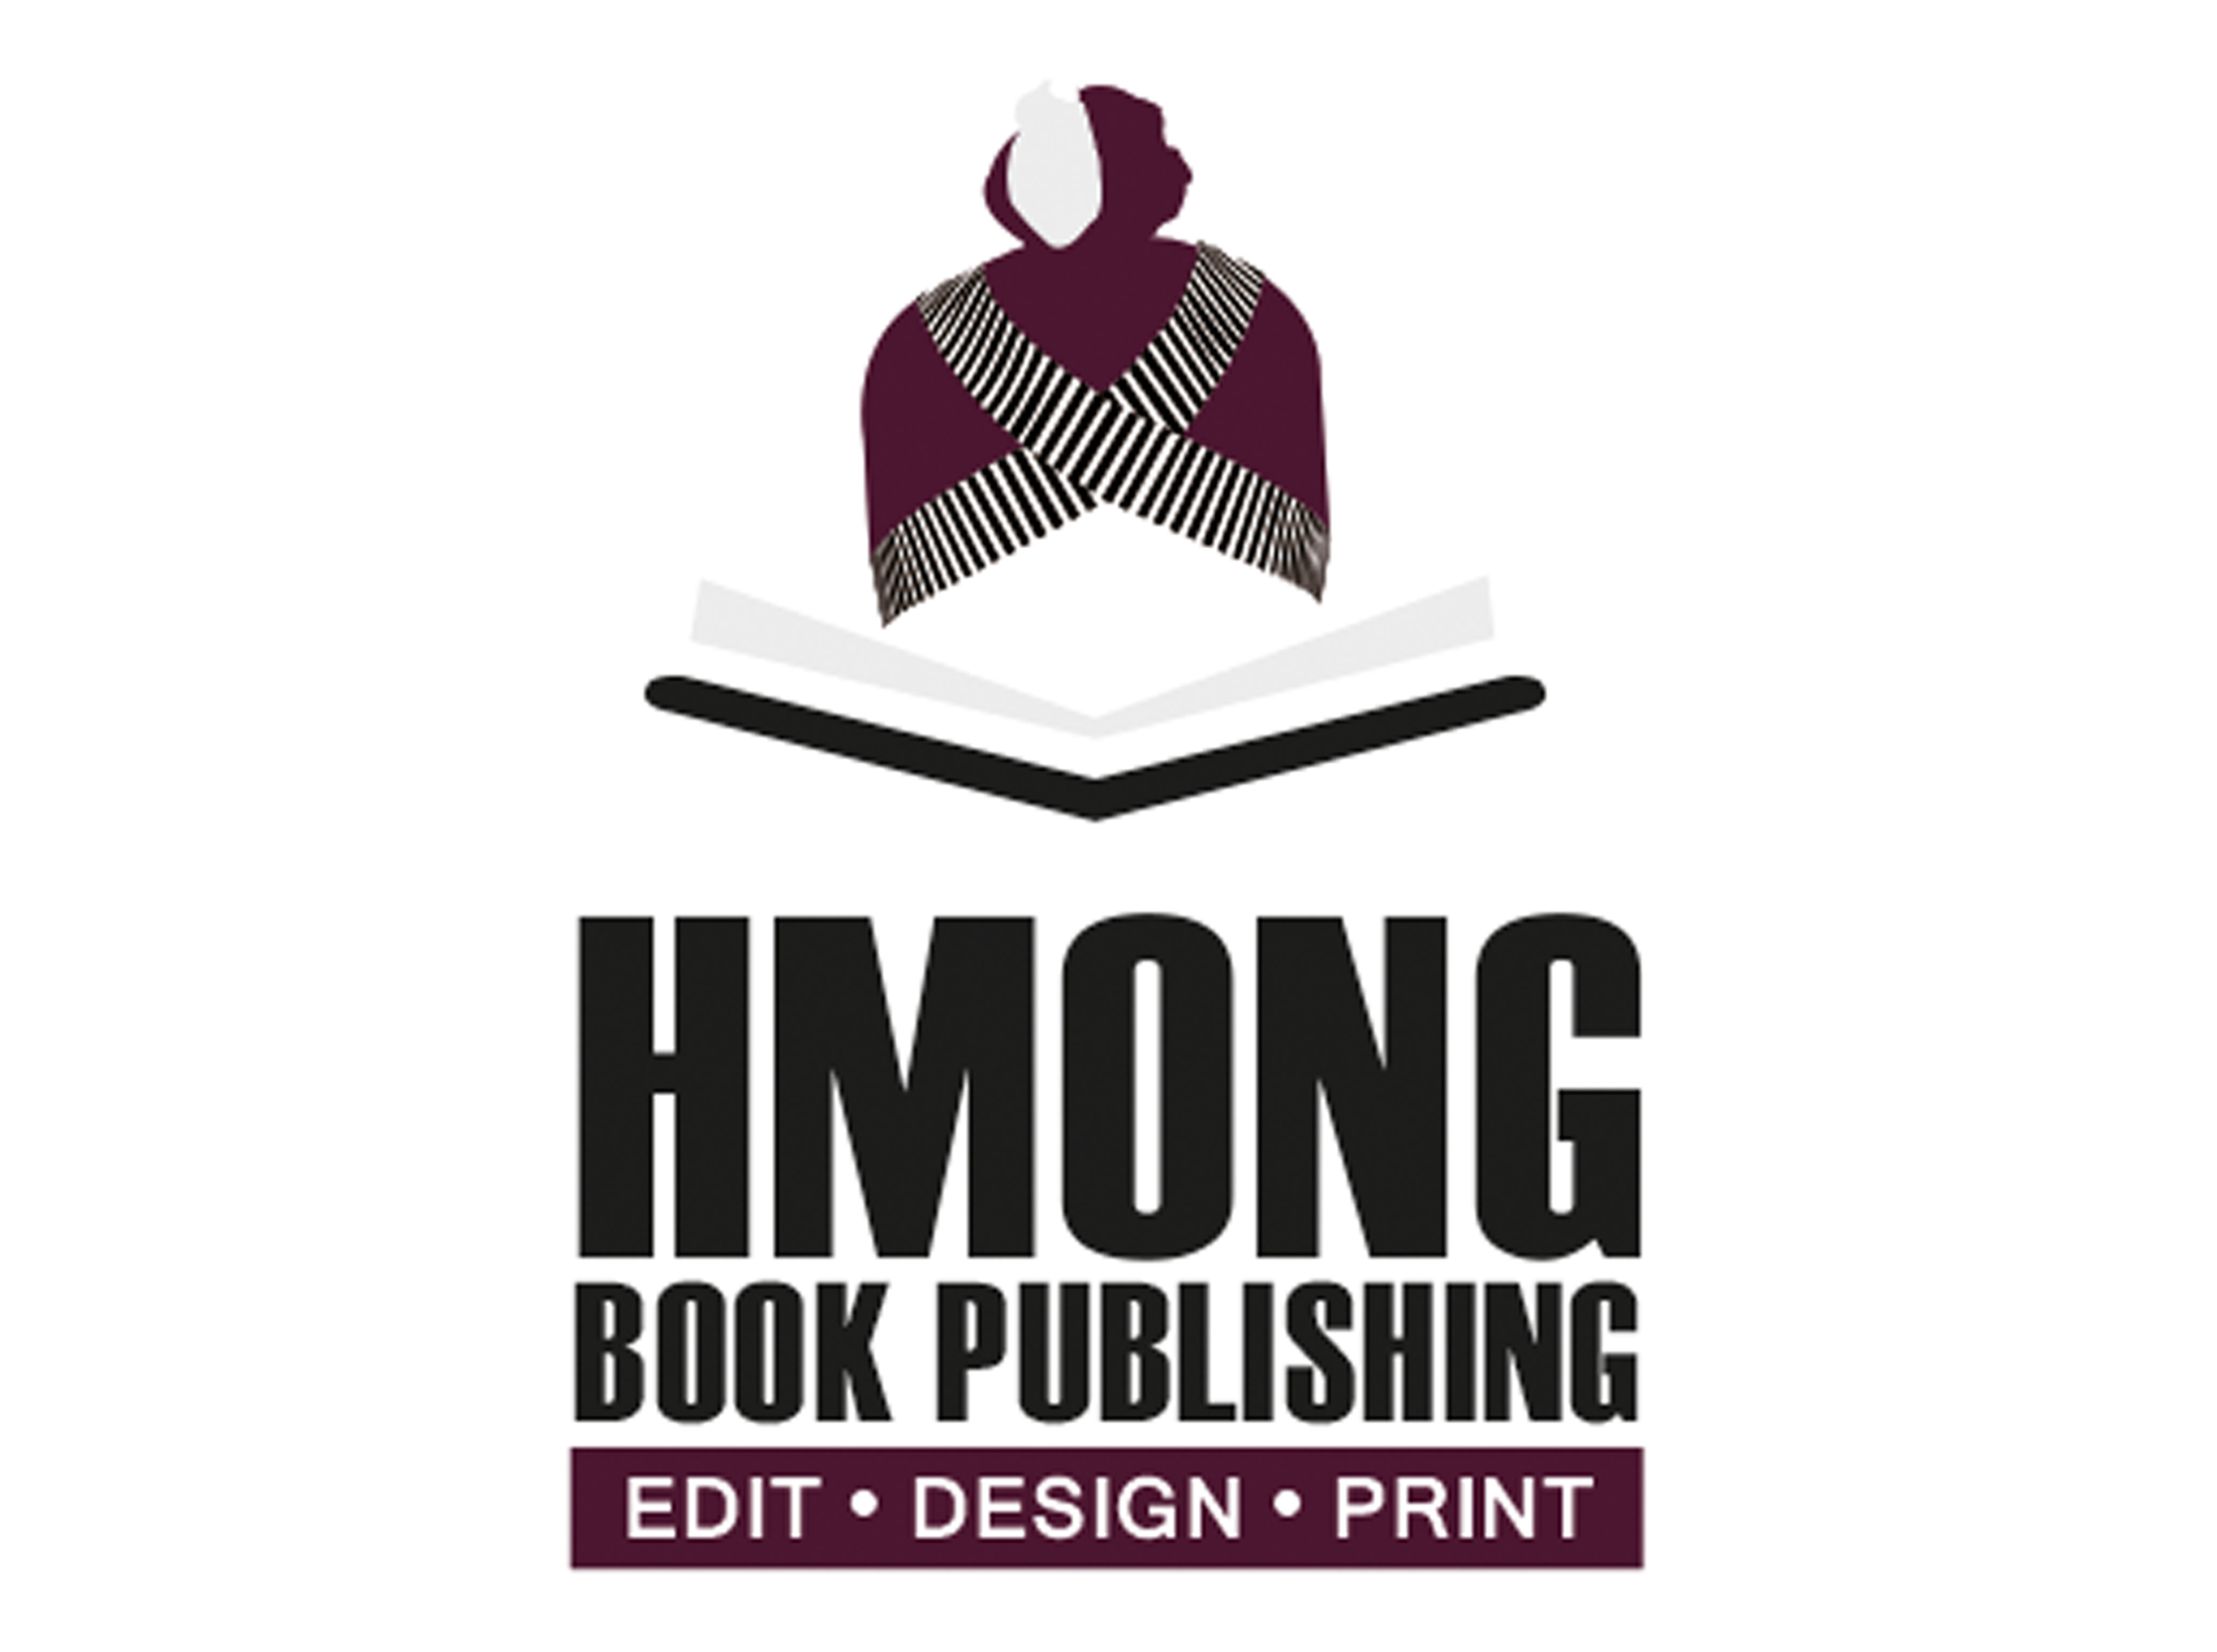 Hmong Book Publishing